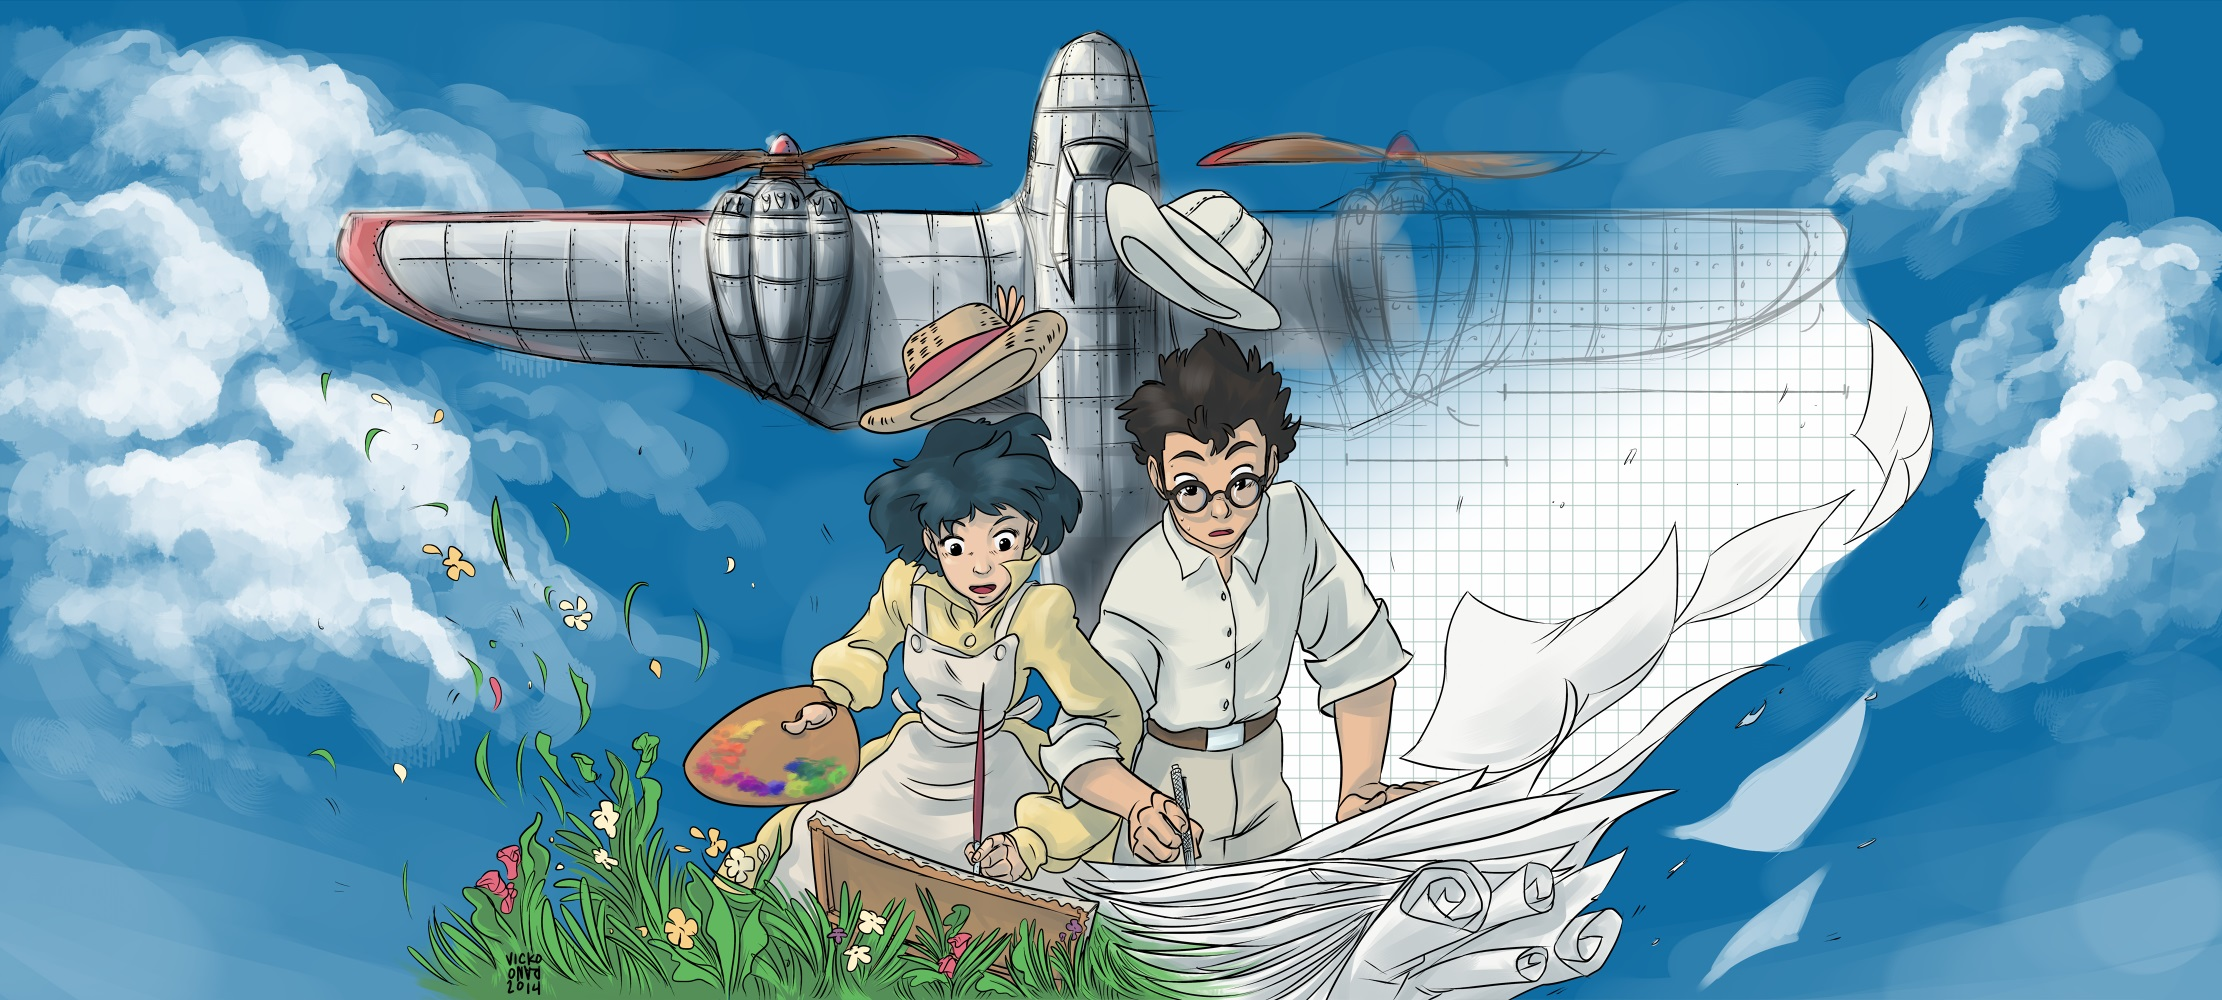 The Wind Rises Images HD Wallpaper And Background Photos